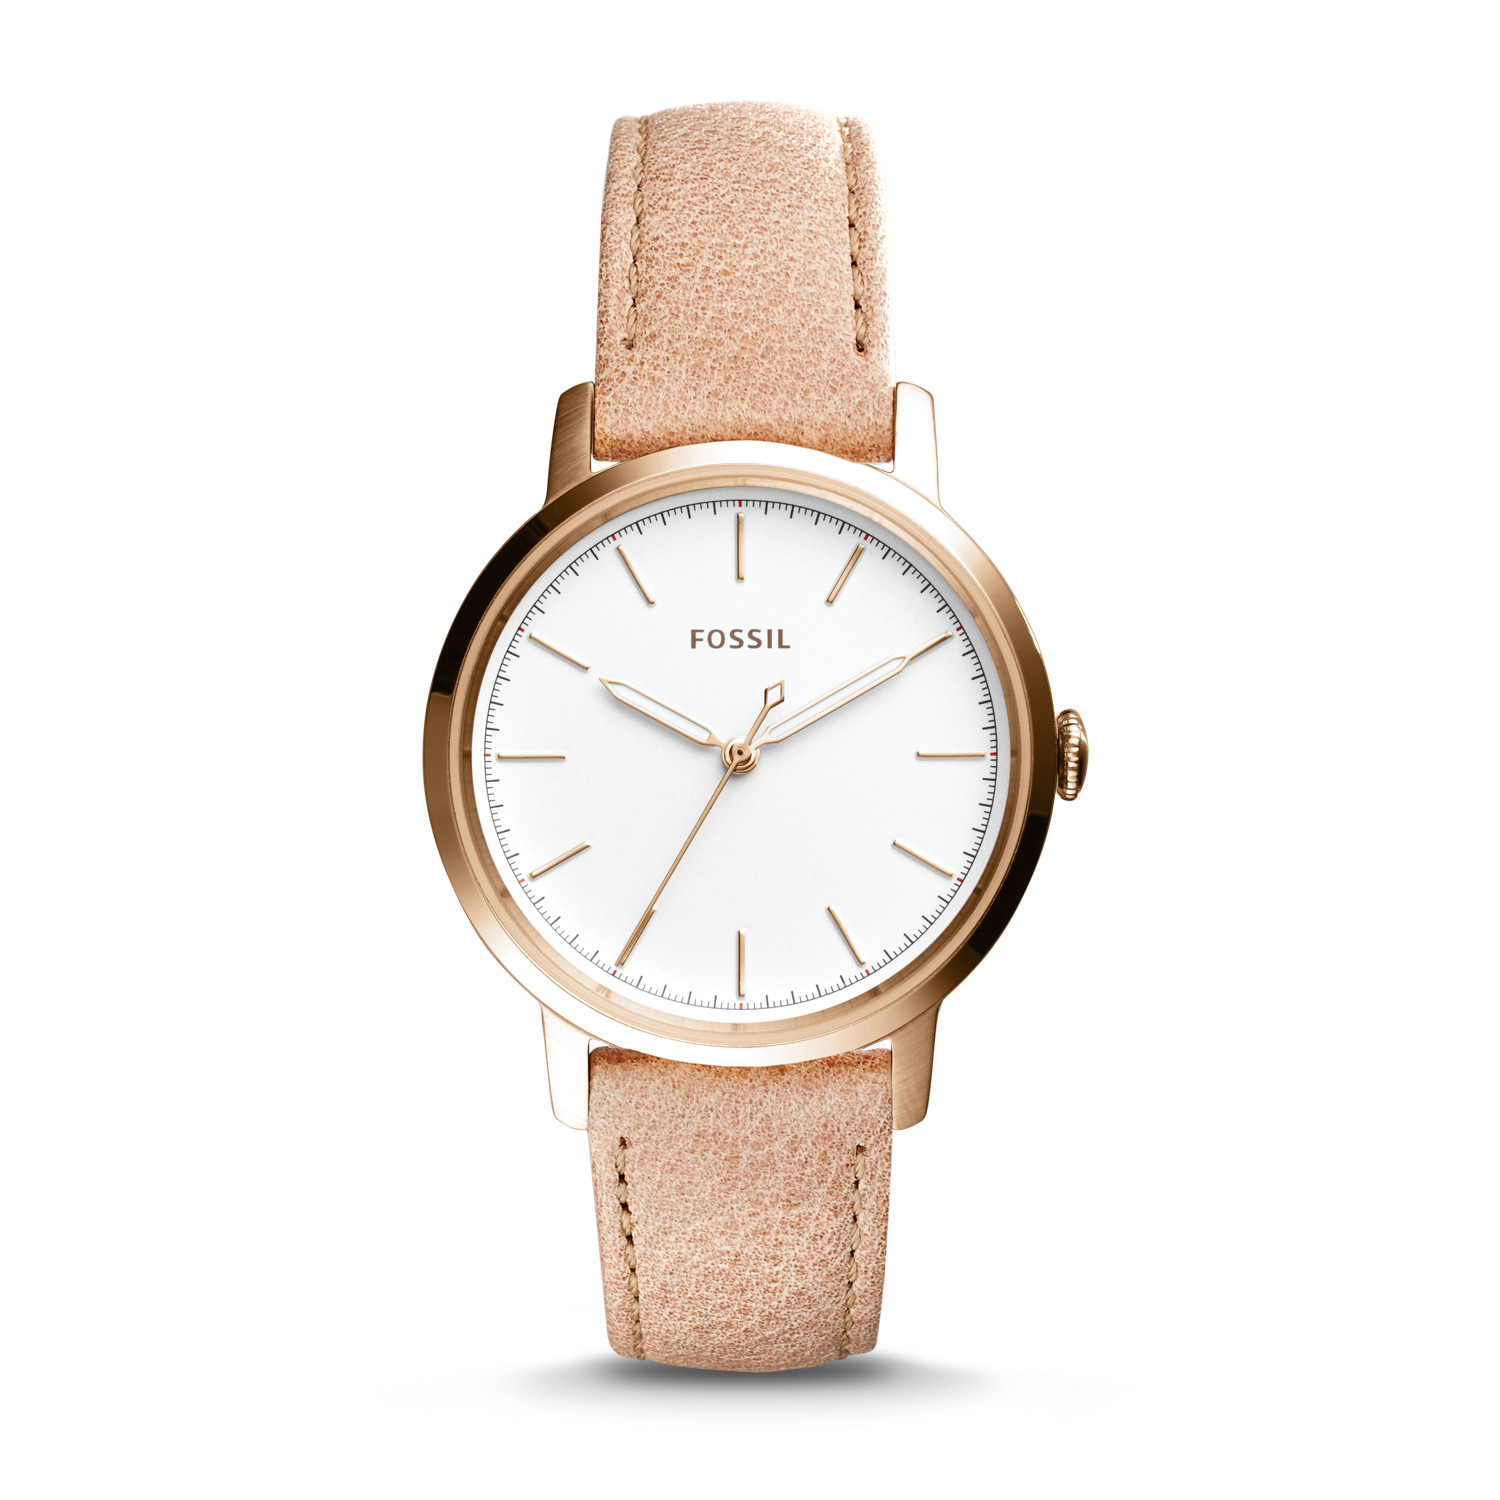 pdpzoom aemresponsive sand lblaltimage en leather products watches us sku muse watch fossil vintage automatic